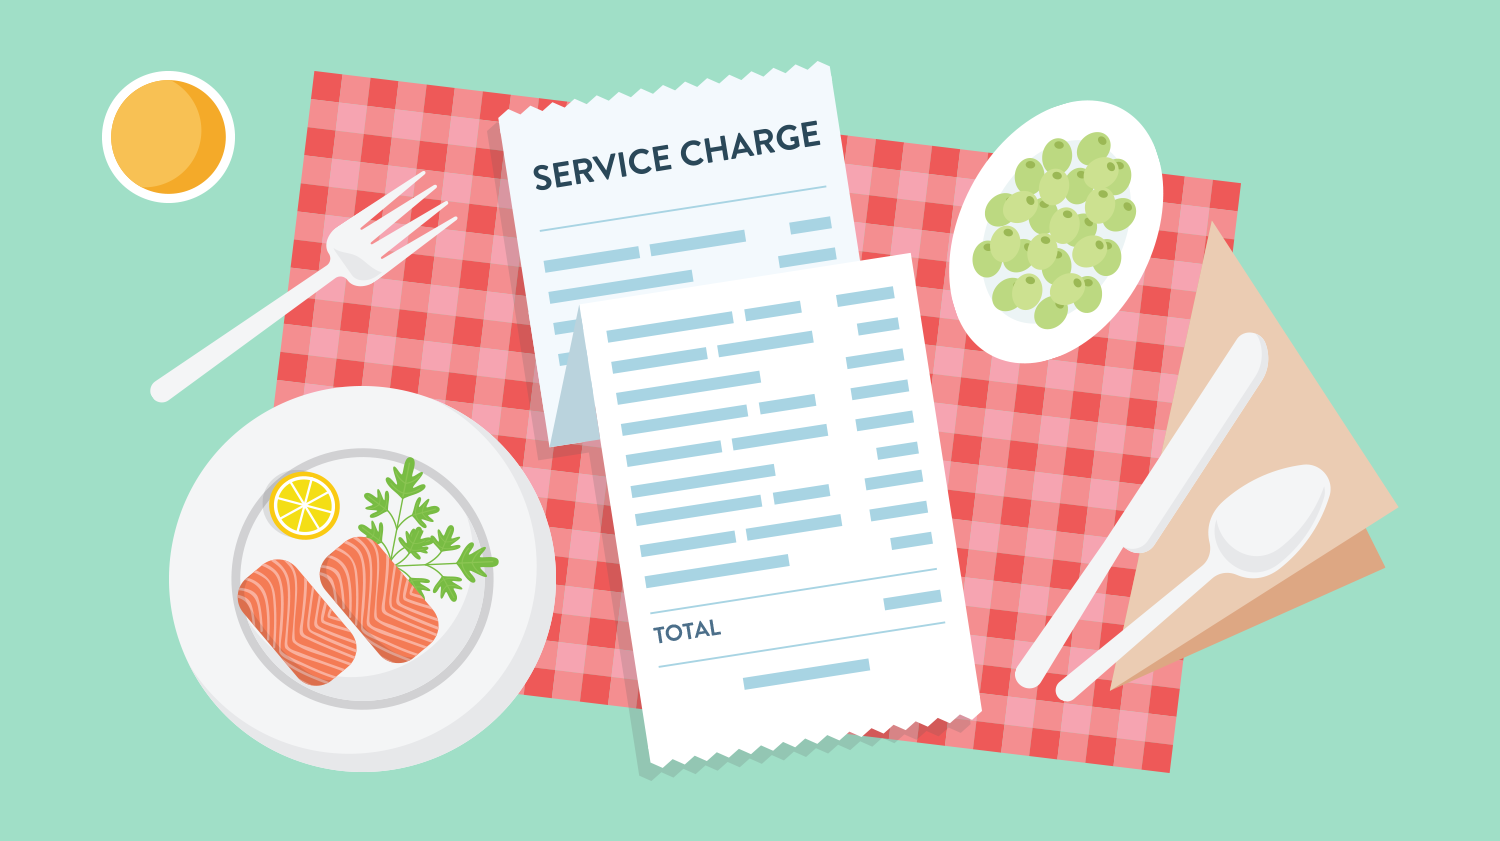 UPDATED: Service Charge Law in the Philippines –  Implementing Rules and Regulations have been signed! Here's what employers should know